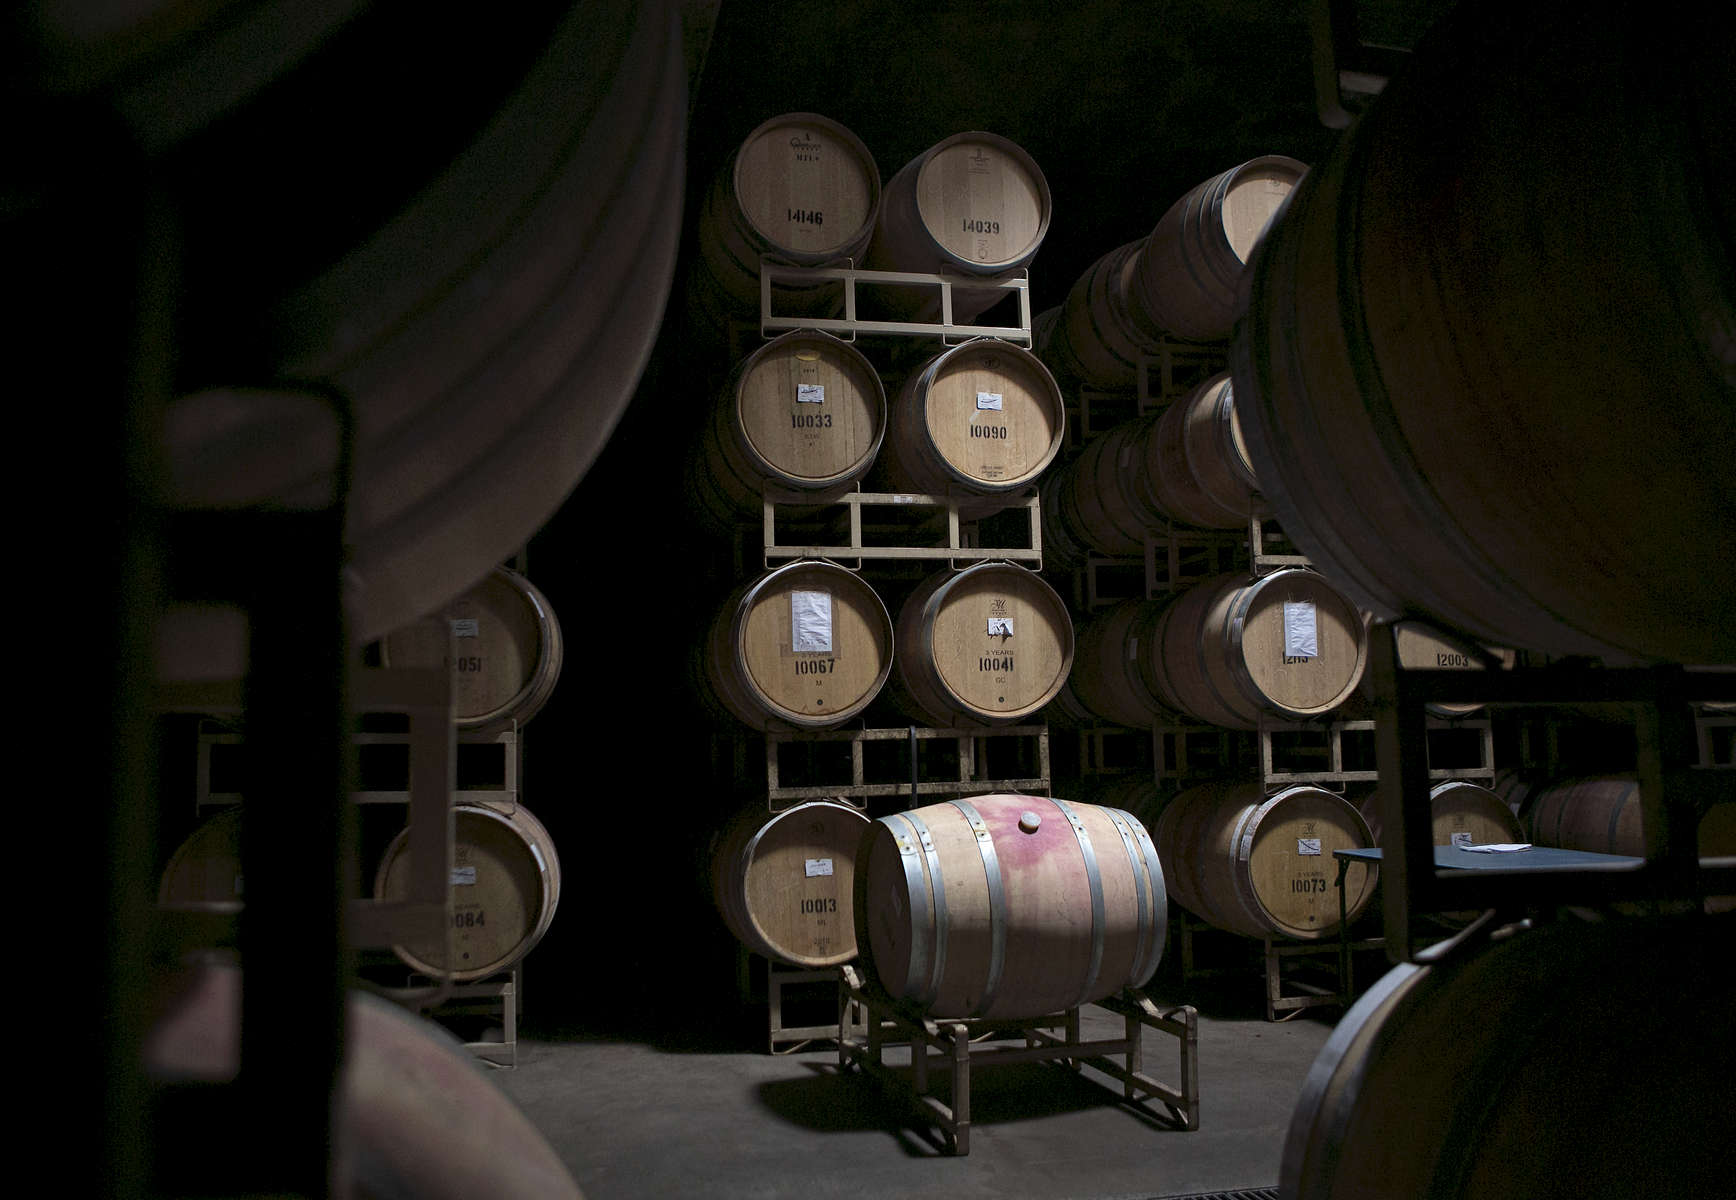 The LEED-certified barrel cellar at Sokol Blosser Winery, constructed in 2002.